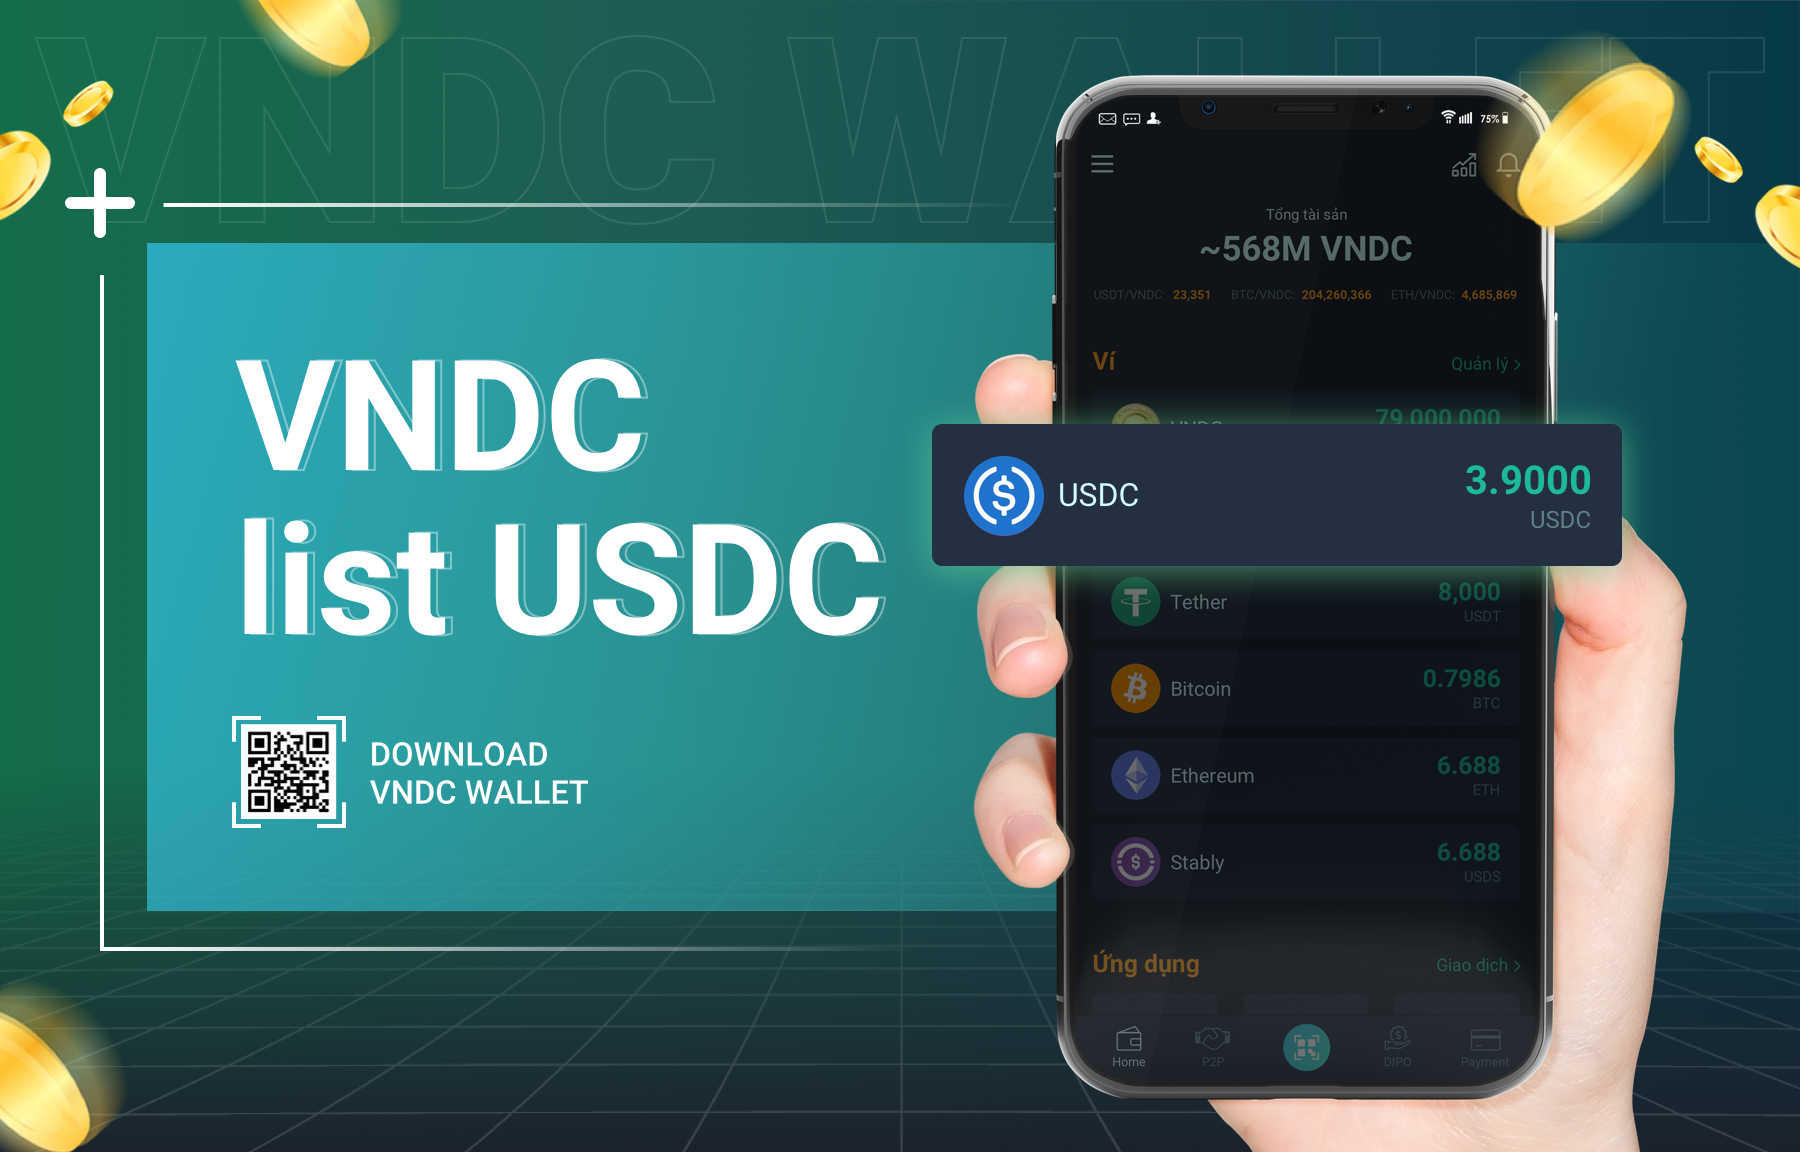 USD Coin (USDC) is now available on VNDC Wallet